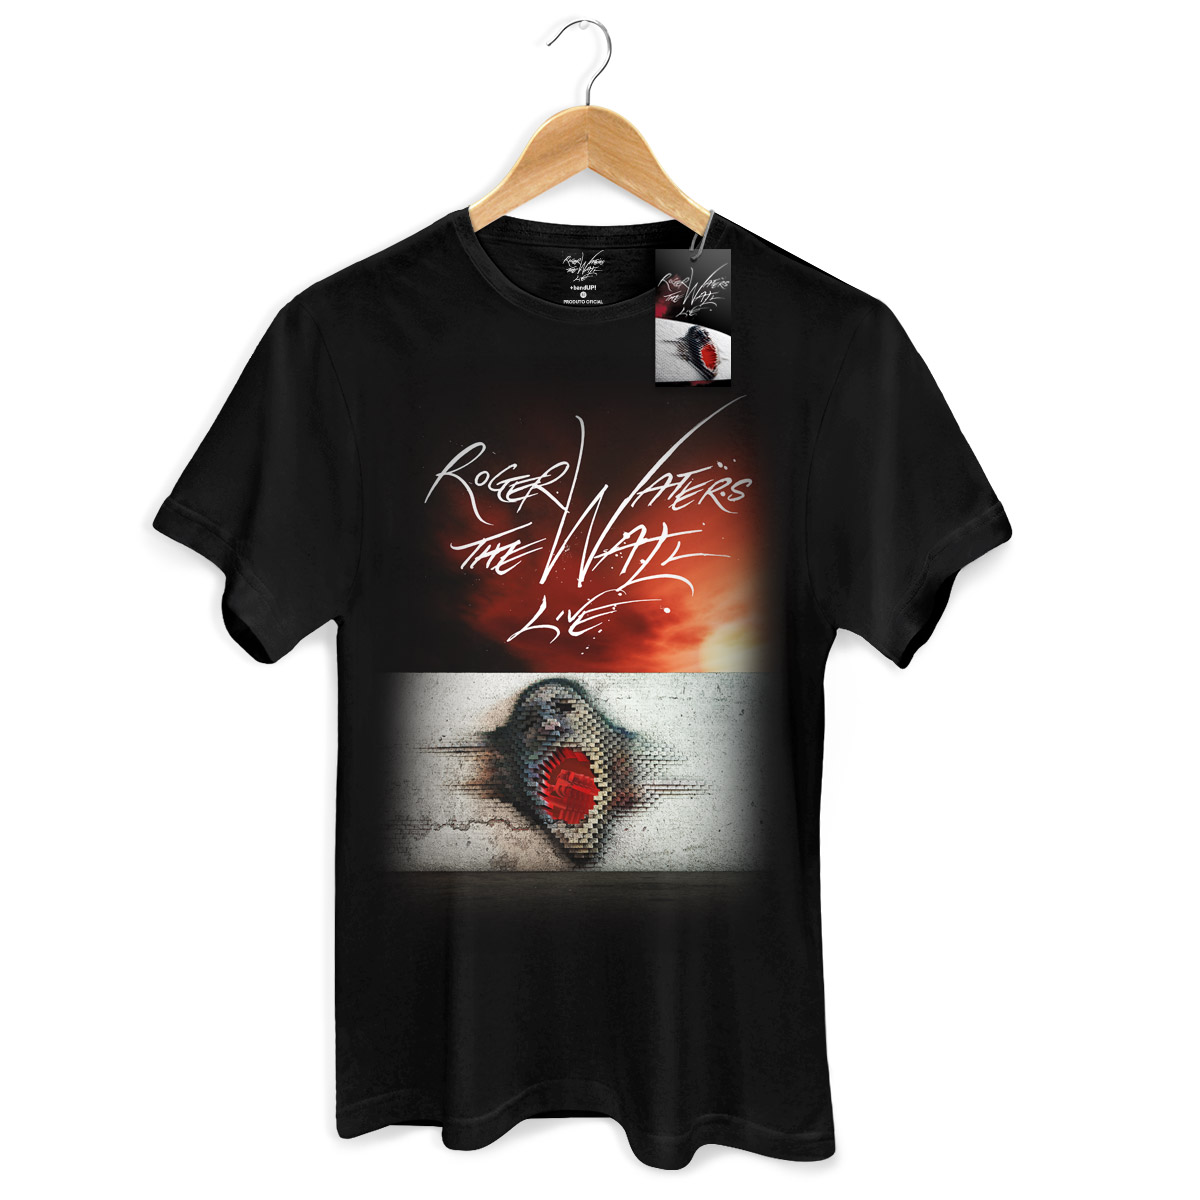 Camiseta Masculina Roger Waters The Wall Live  - bandUP Store Marketplace